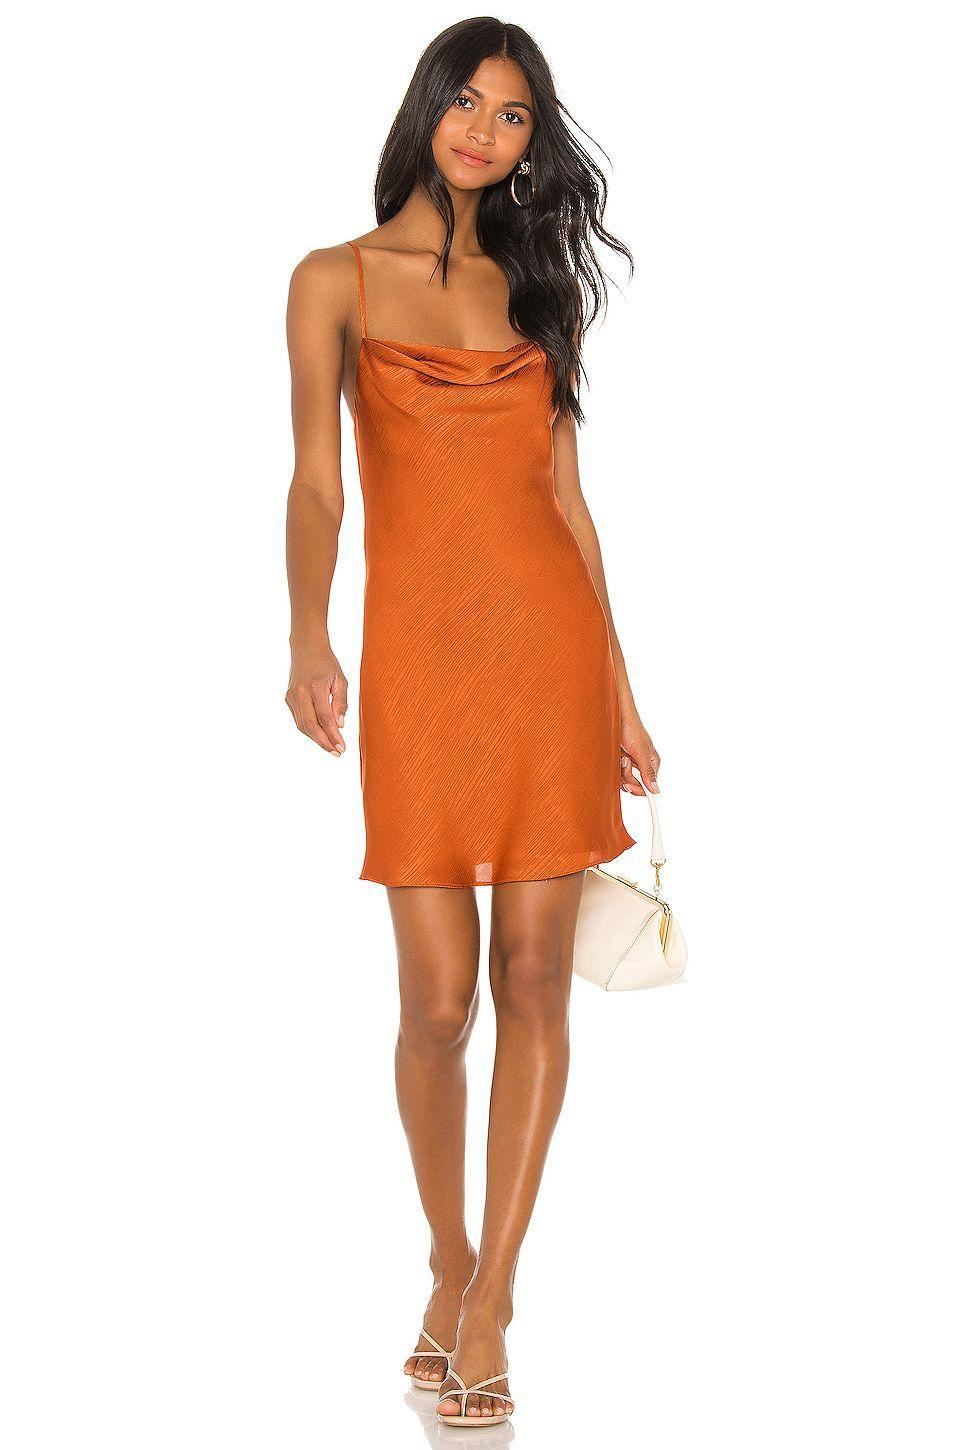 """<p><strong>House of Harlow 1960</strong></p><p>revolve.com</p><p><strong>$148.00</strong></p><p><a href=""""https://go.redirectingat.com?id=74968X1596630&url=https%3A%2F%2Fwww.revolve.com%2Fdp%2FHOOF-WD501%2F&sref=https%3A%2F%2Fwww.marieclaire.com%2Ffashion%2Fg32662286%2Faffordable-sundresses%2F"""" rel=""""nofollow noopener"""" target=""""_blank"""" data-ylk=""""slk:SHOP IT"""" class=""""link rapid-noclick-resp"""">SHOP IT</a></p><p>Ready for a night on the town and drinks with the girls? All this slinky party dress needs is a fun <a href=""""https://www.shopbop.com/woke-pouchette-studio-33/vp/v=1/1599840897.htm?folderID=13509&fm=other-viewall&os=false&colorId=13335&ref_=SB_PLP_NB_41"""" rel=""""nofollow noopener"""" target=""""_blank"""" data-ylk=""""slk:shoulder bag"""" class=""""link rapid-noclick-resp"""">shoulder bag</a> and a pair of your favorite sandals for you to be ready to go.</p>"""